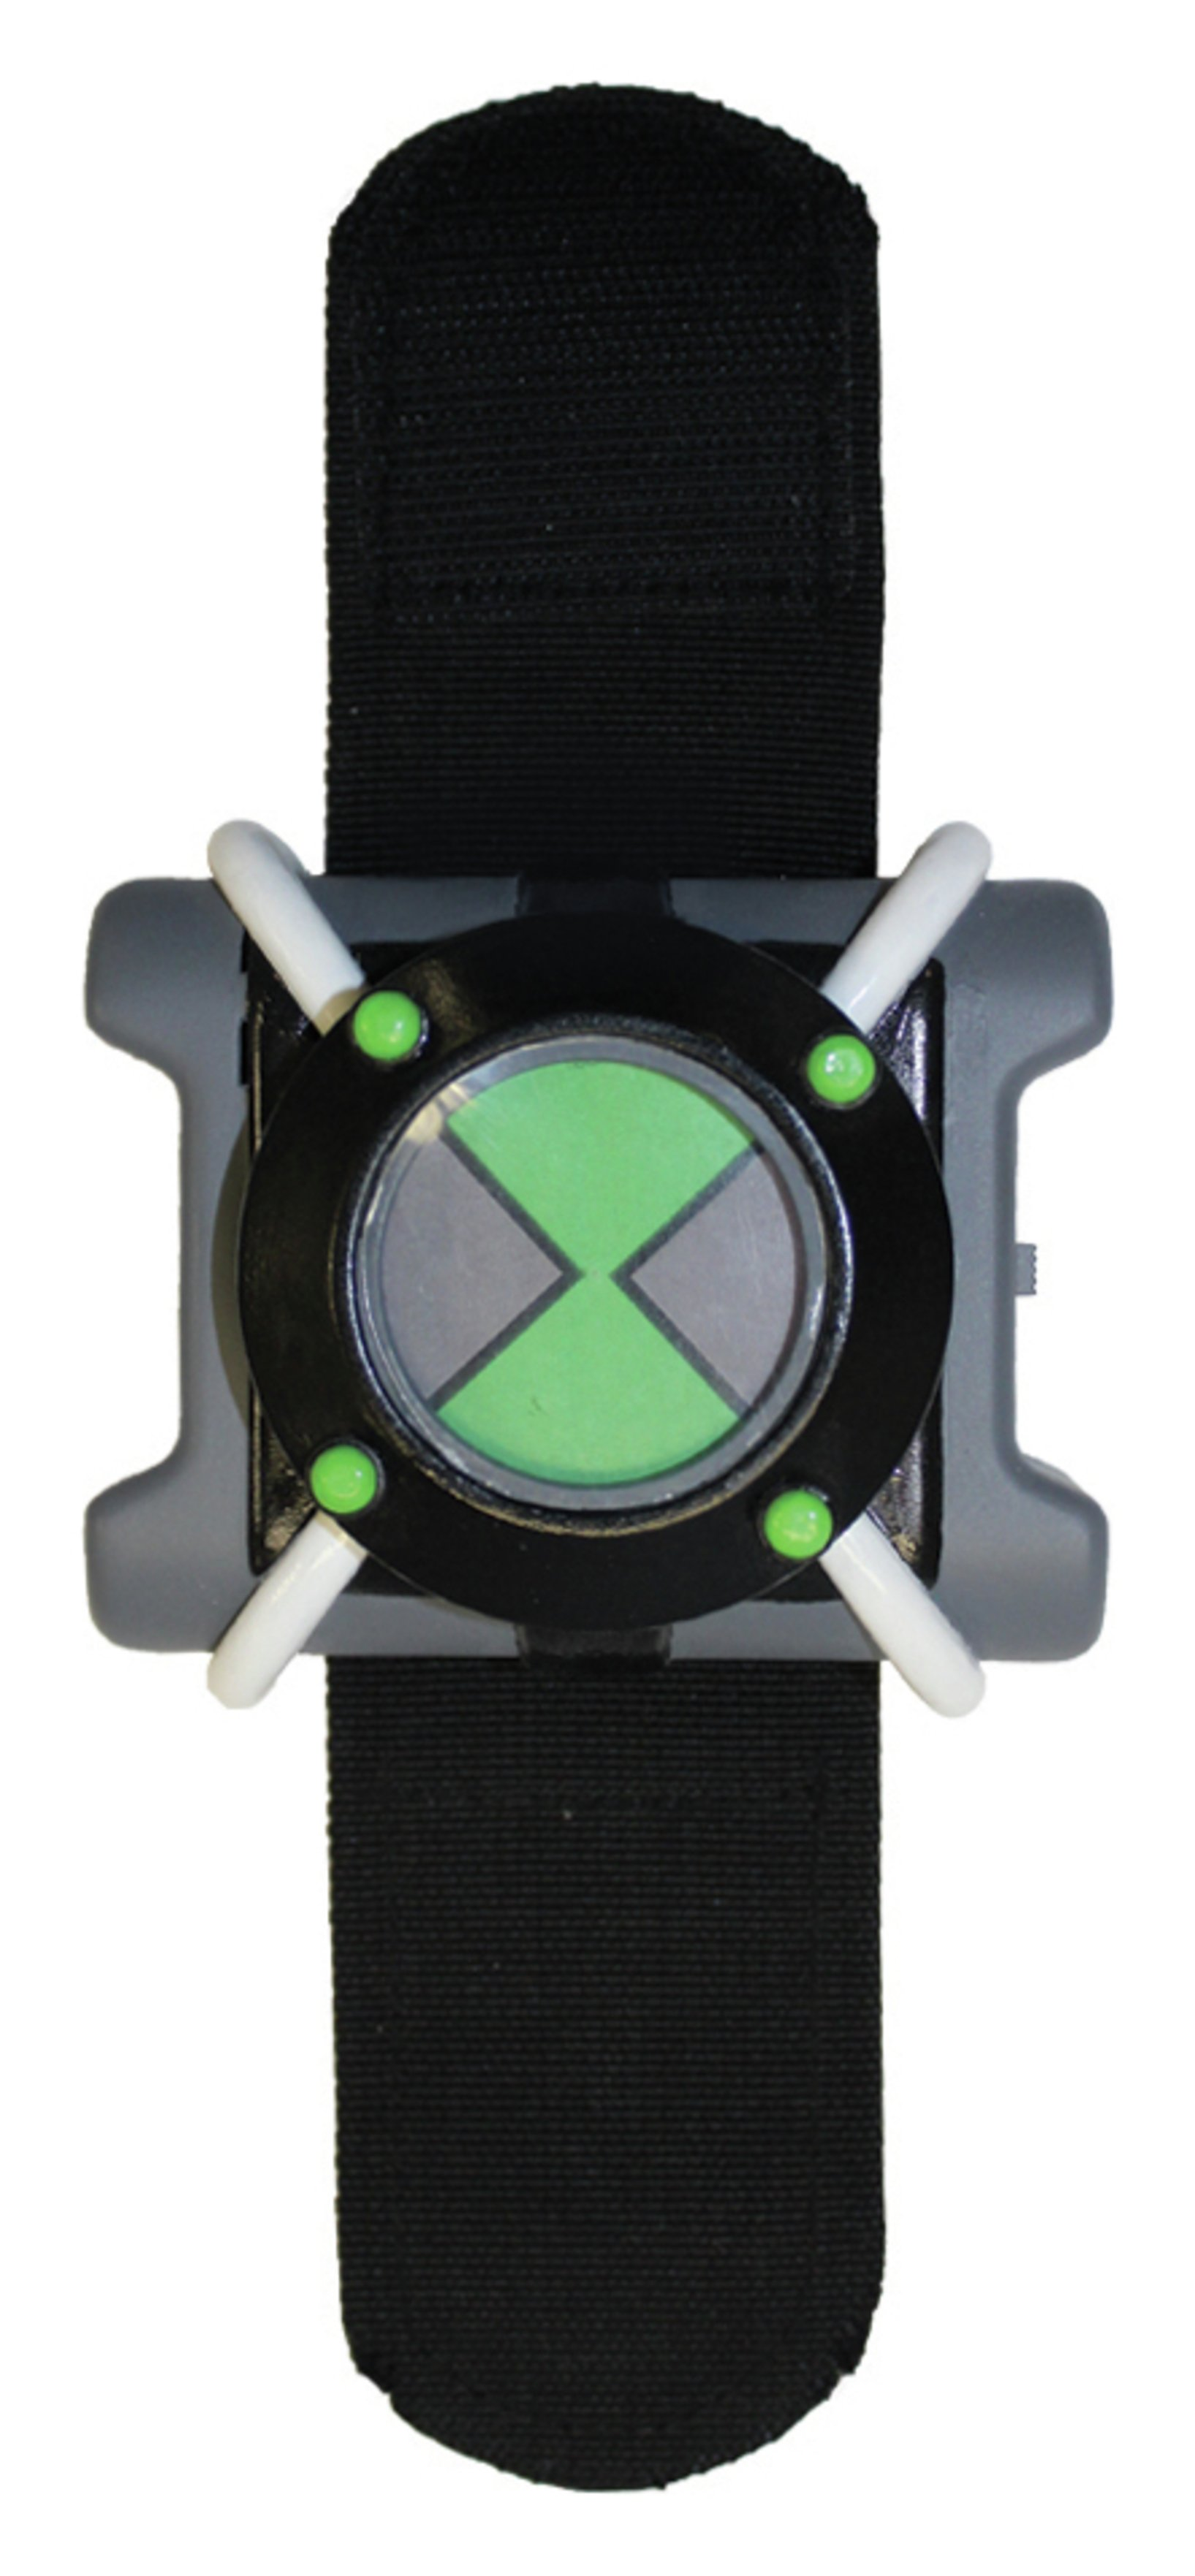 Image of Ben 10 Basic Omnitrix Watch.